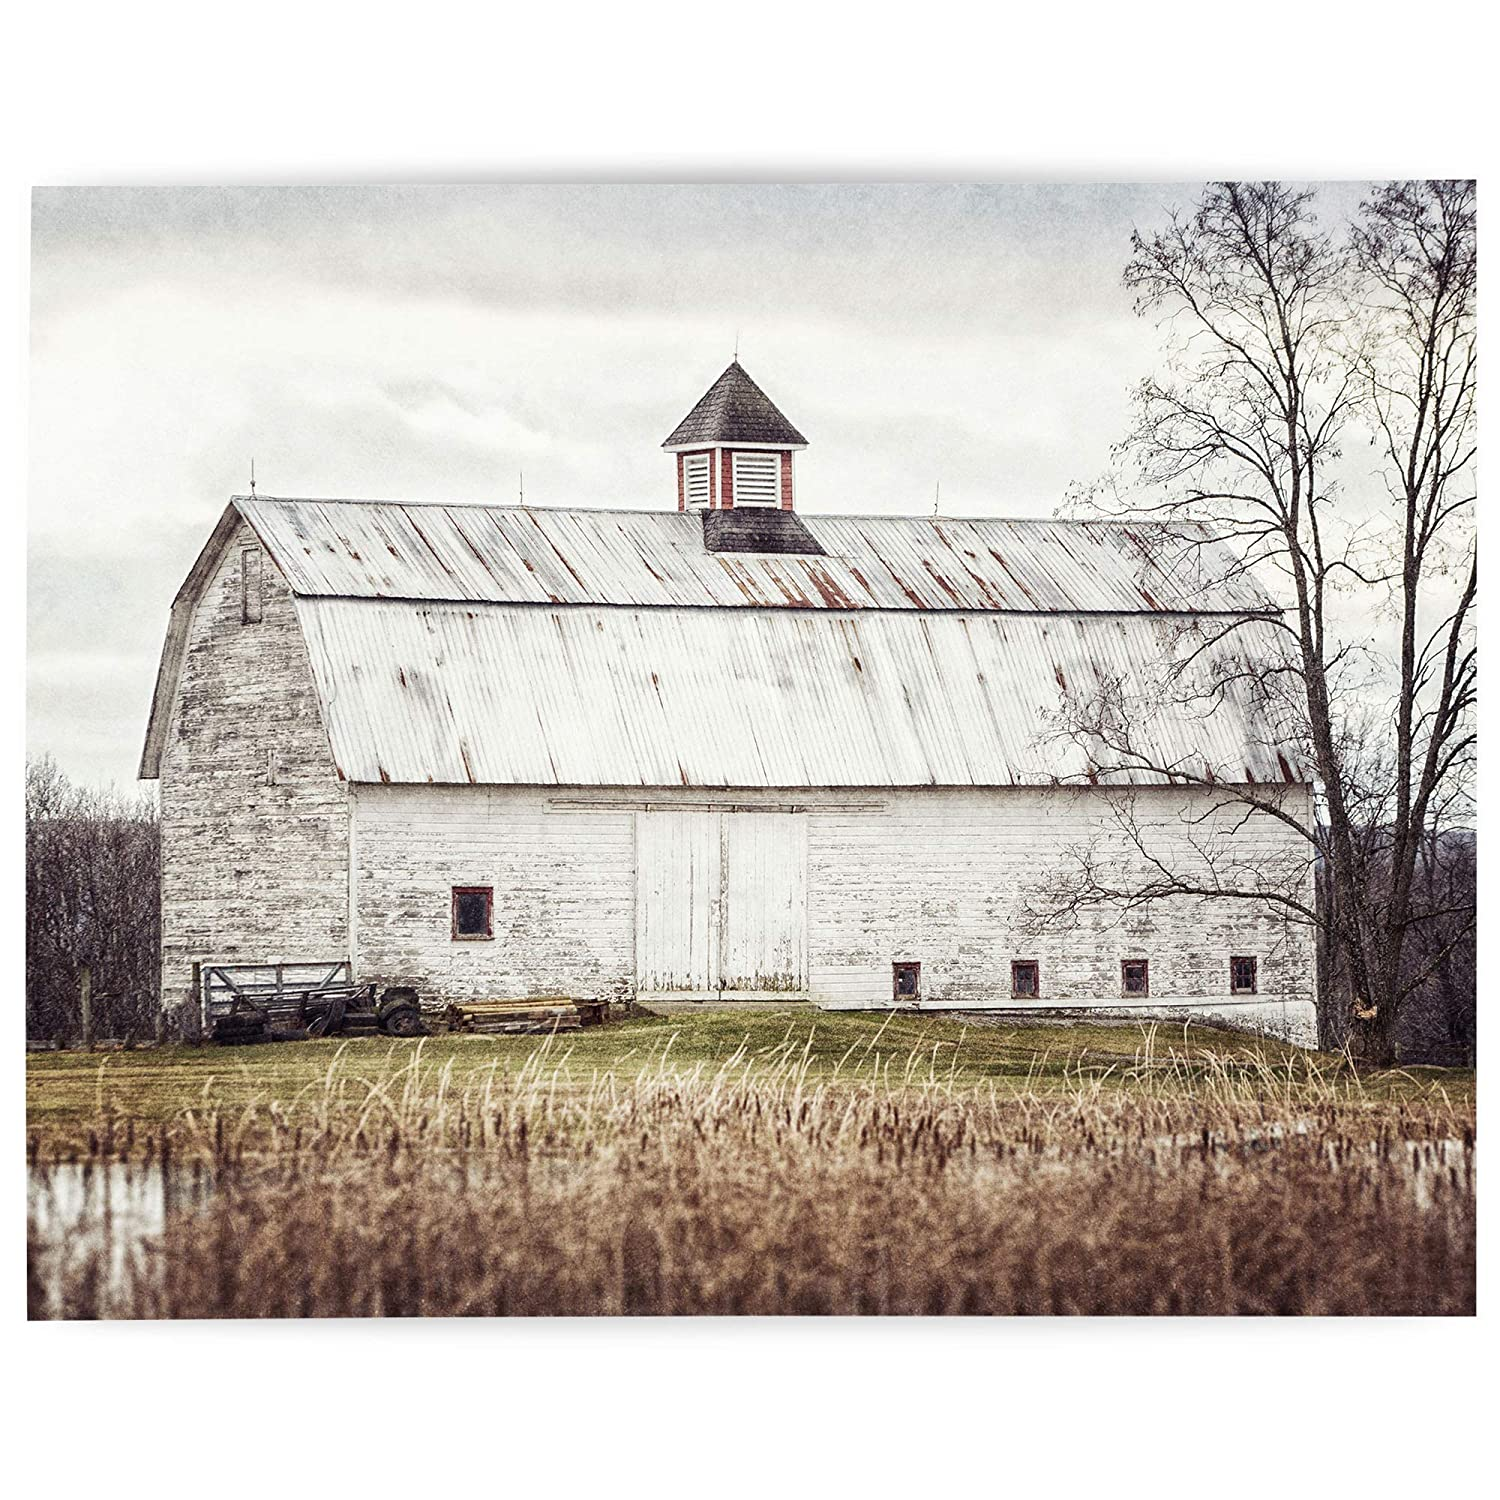 Amazon Com 8x10 Unframed Farmhouse Wall Art Home Decor Print Barn Landscape Country Home Decor Picture For Living Room Or Kitchen Gift For Women Fba810 Handmade